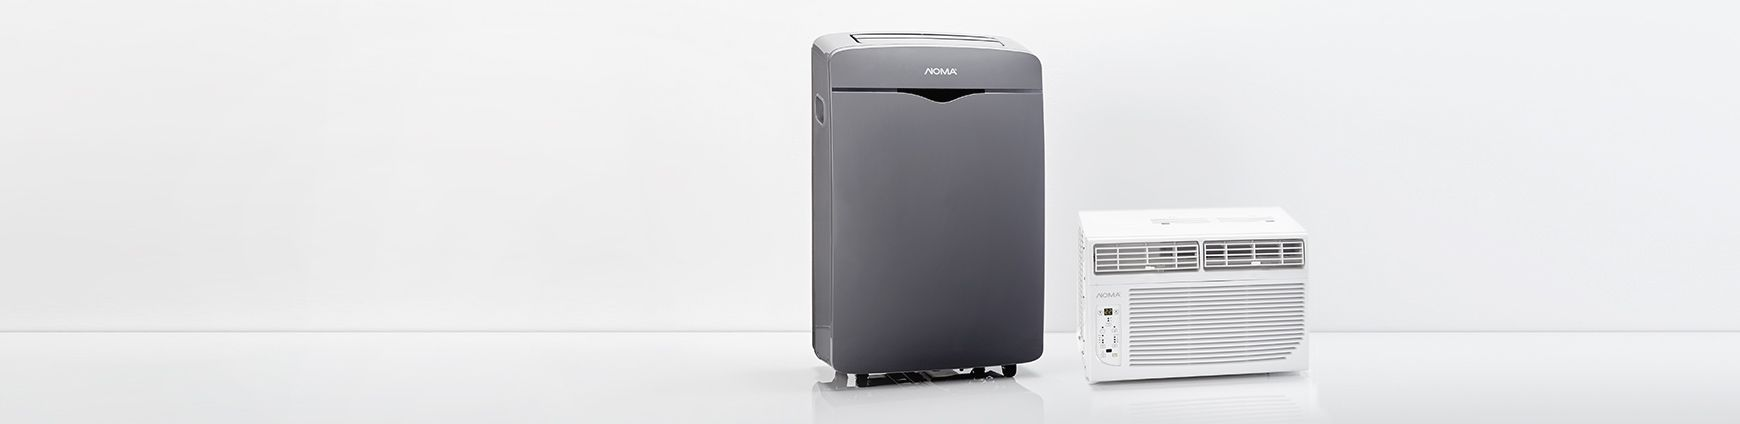 Browse all NOMA air conditioners & accessories